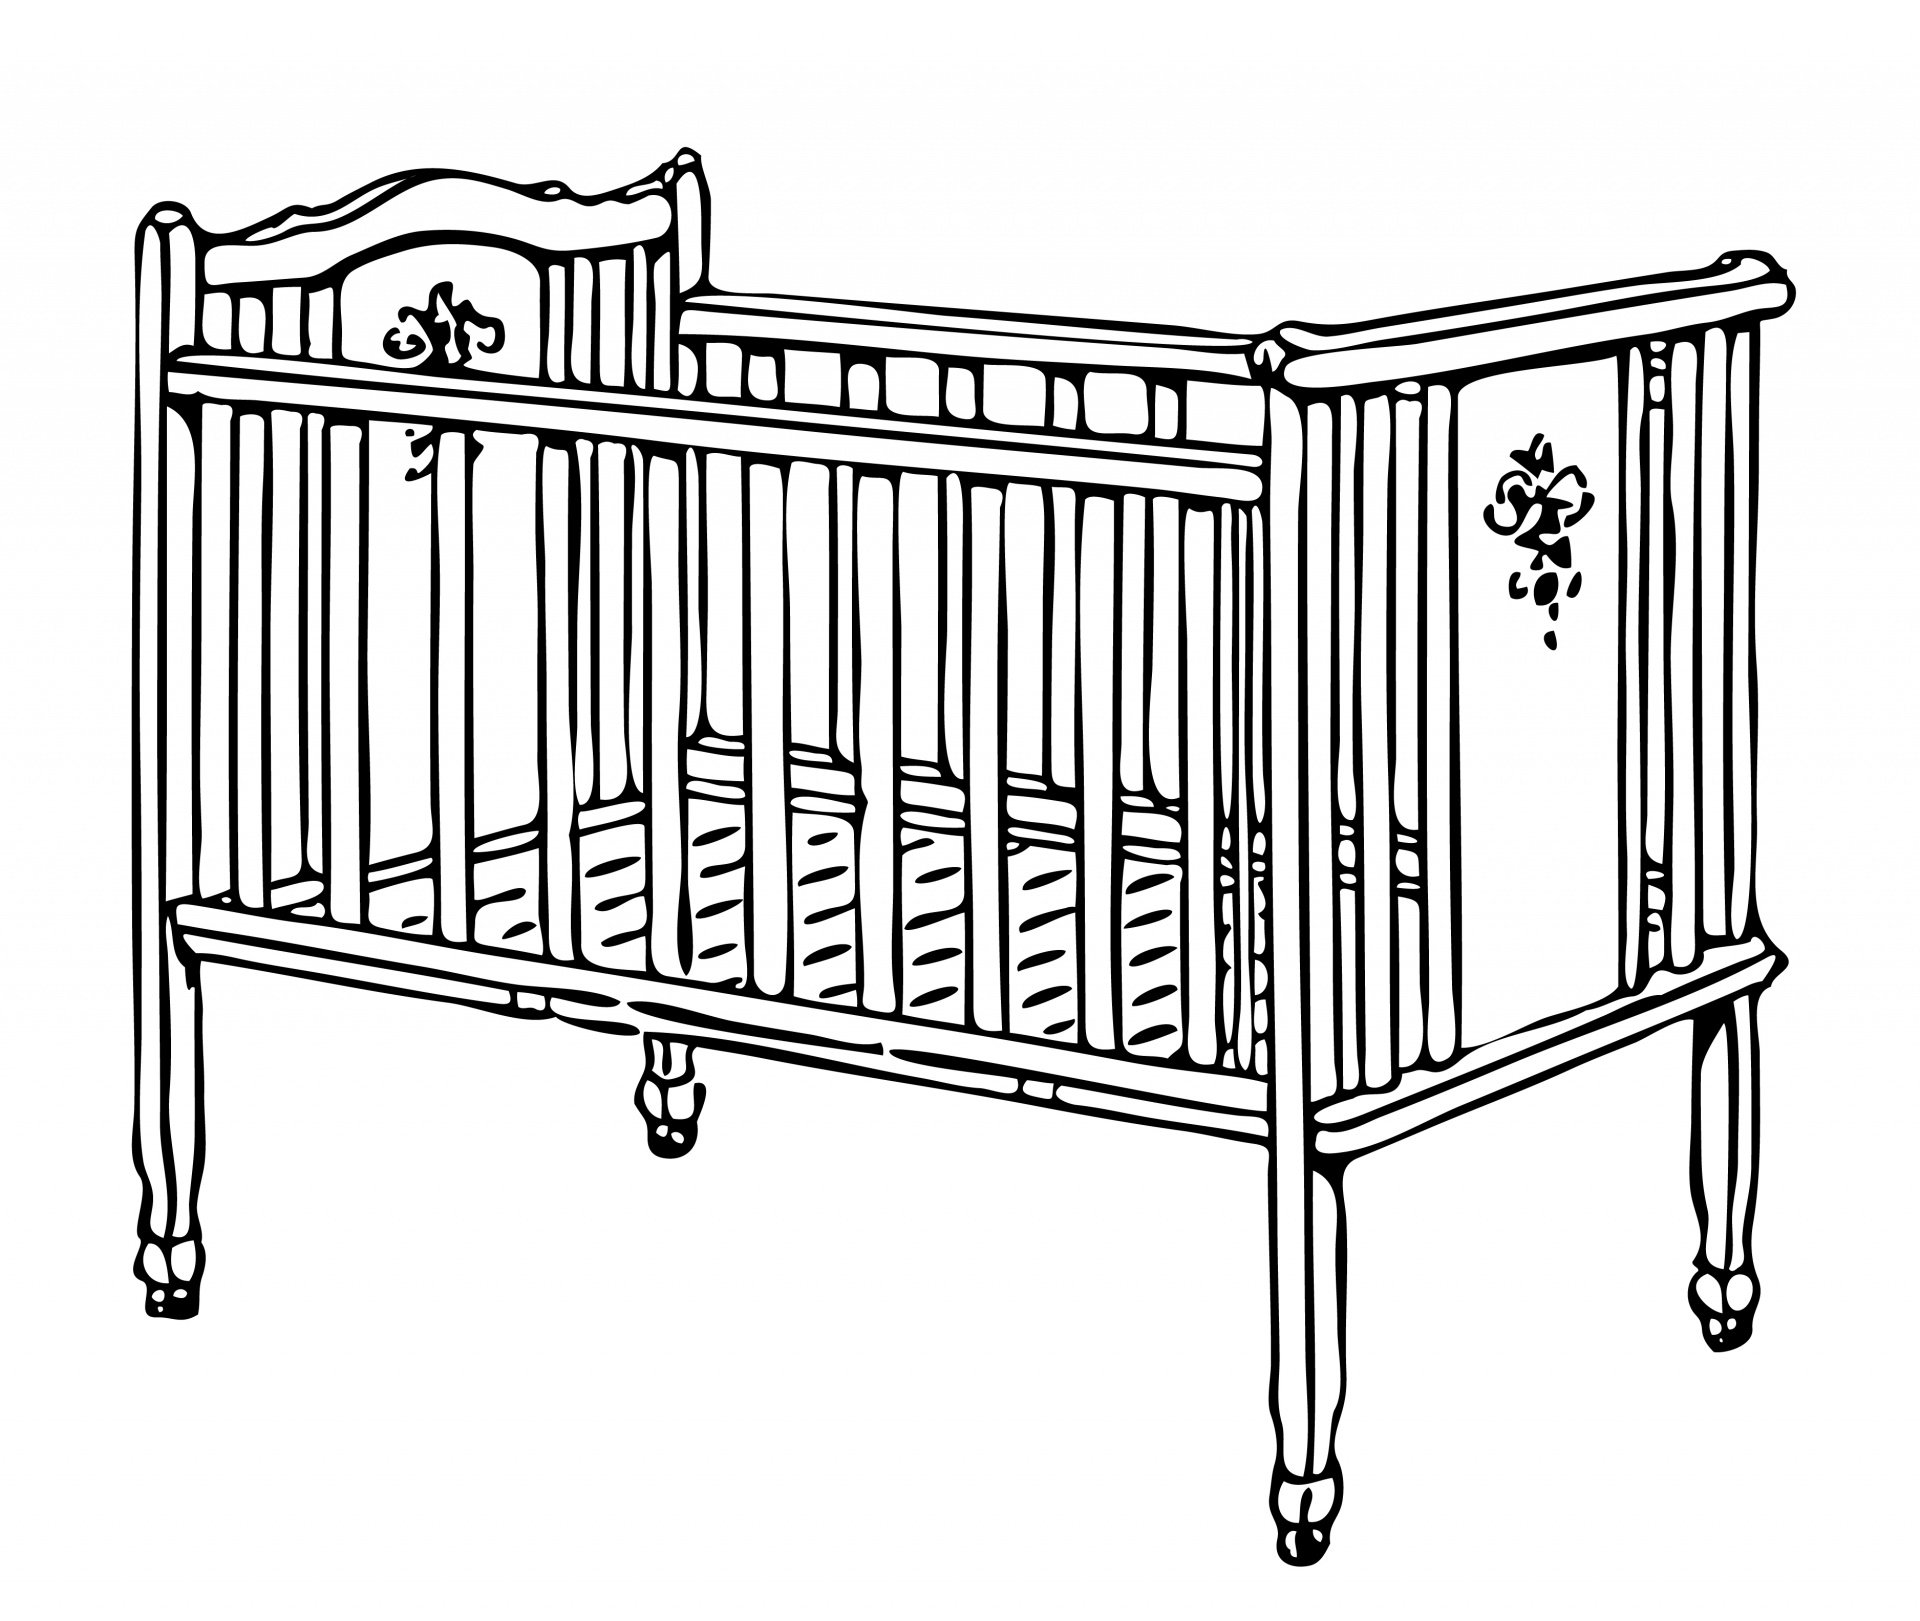 Cot illustration free stock. Crib clipart image stock